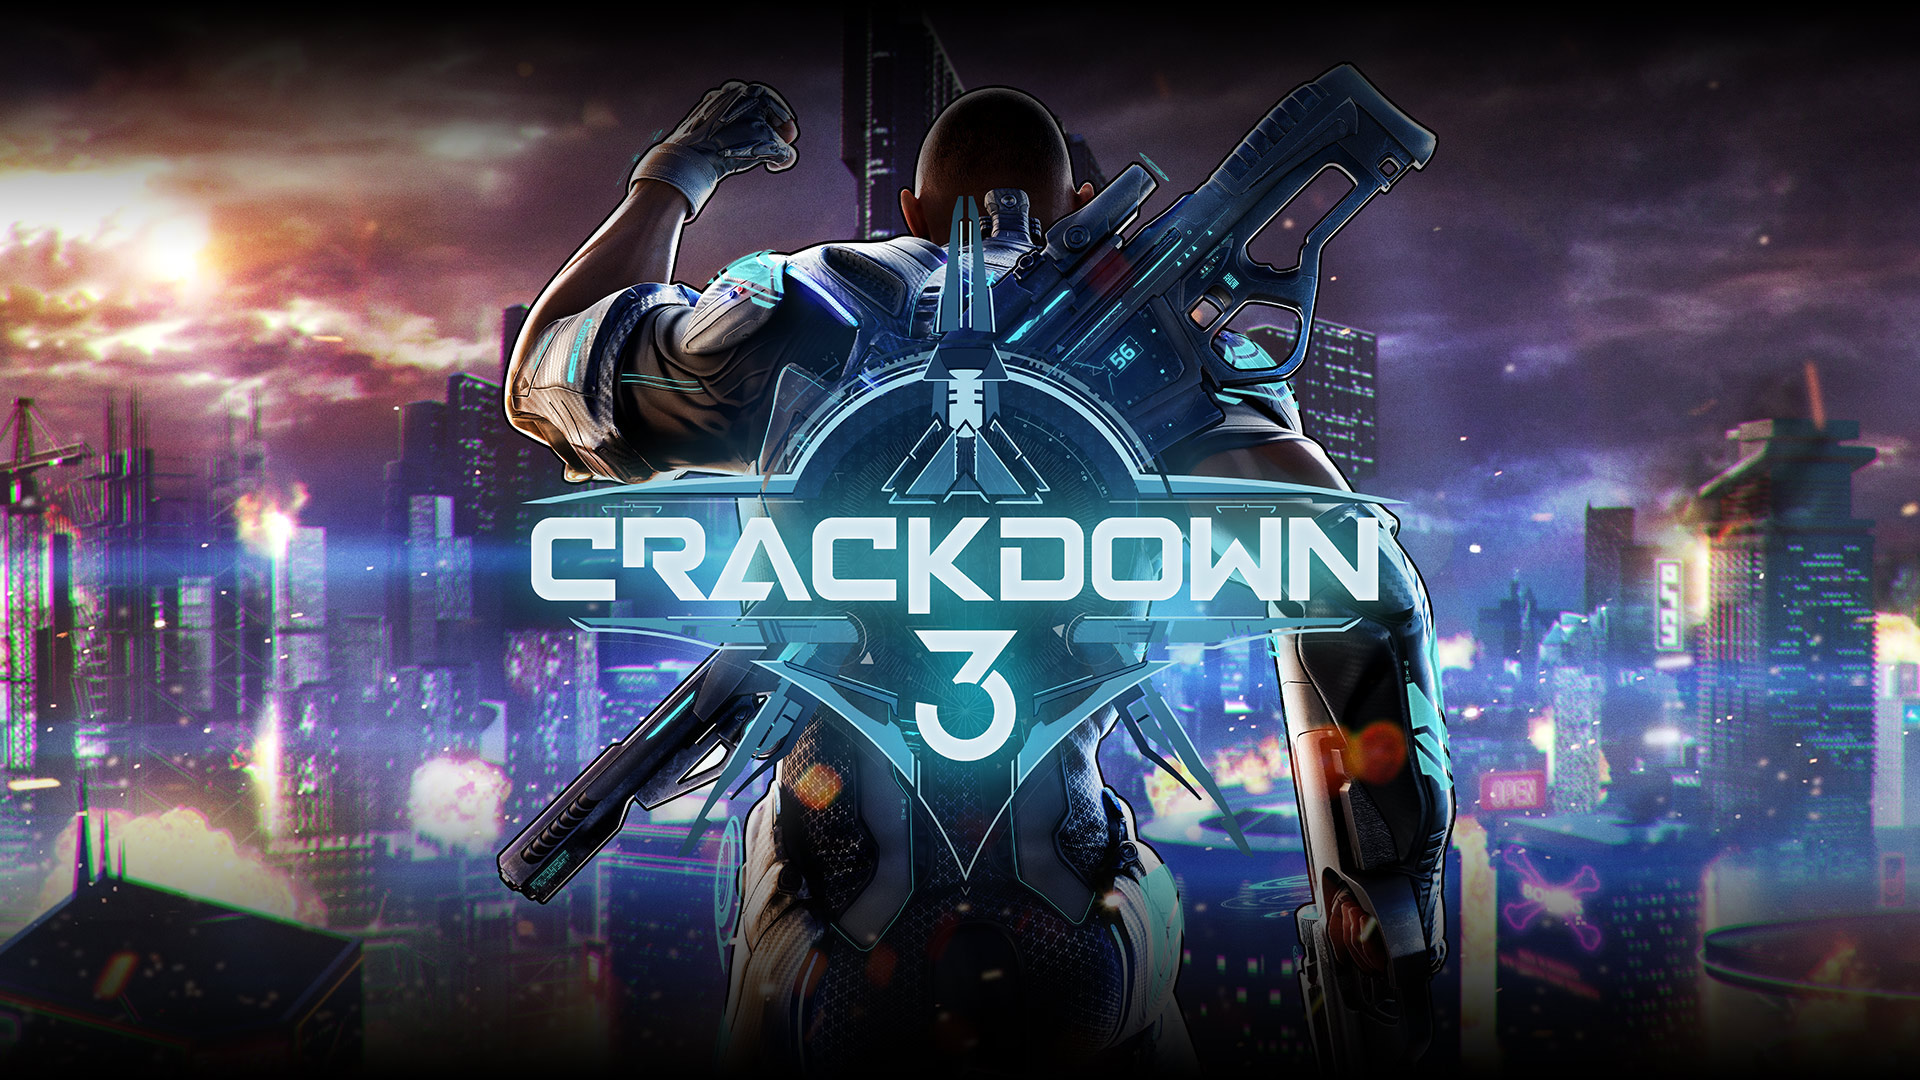 change appearance, character, crackdown 3